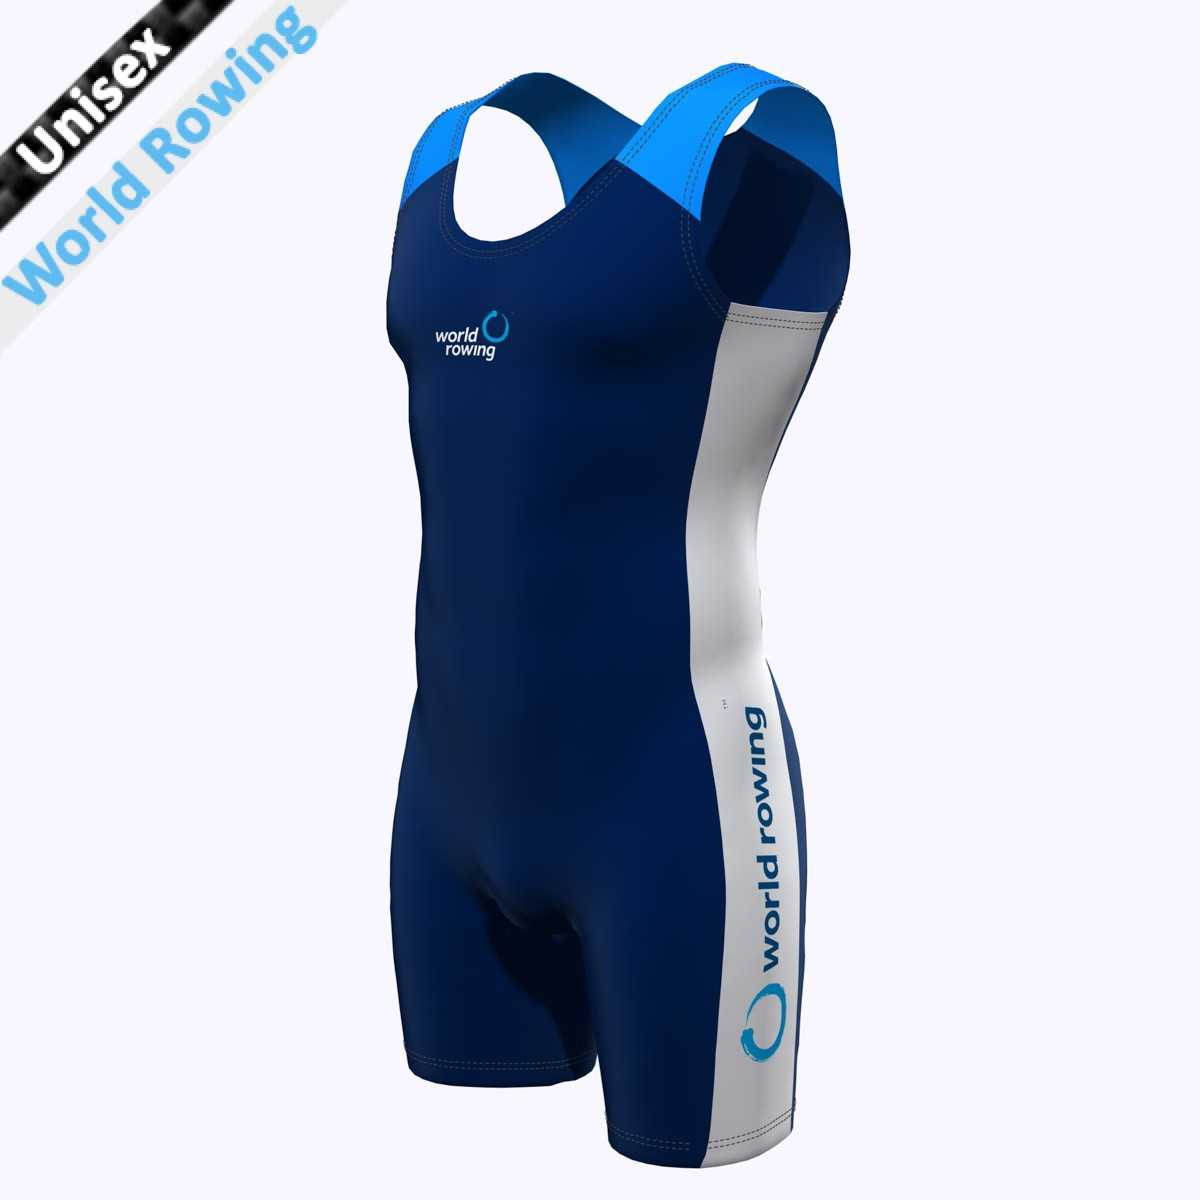 World Rowing Suit - marine blau